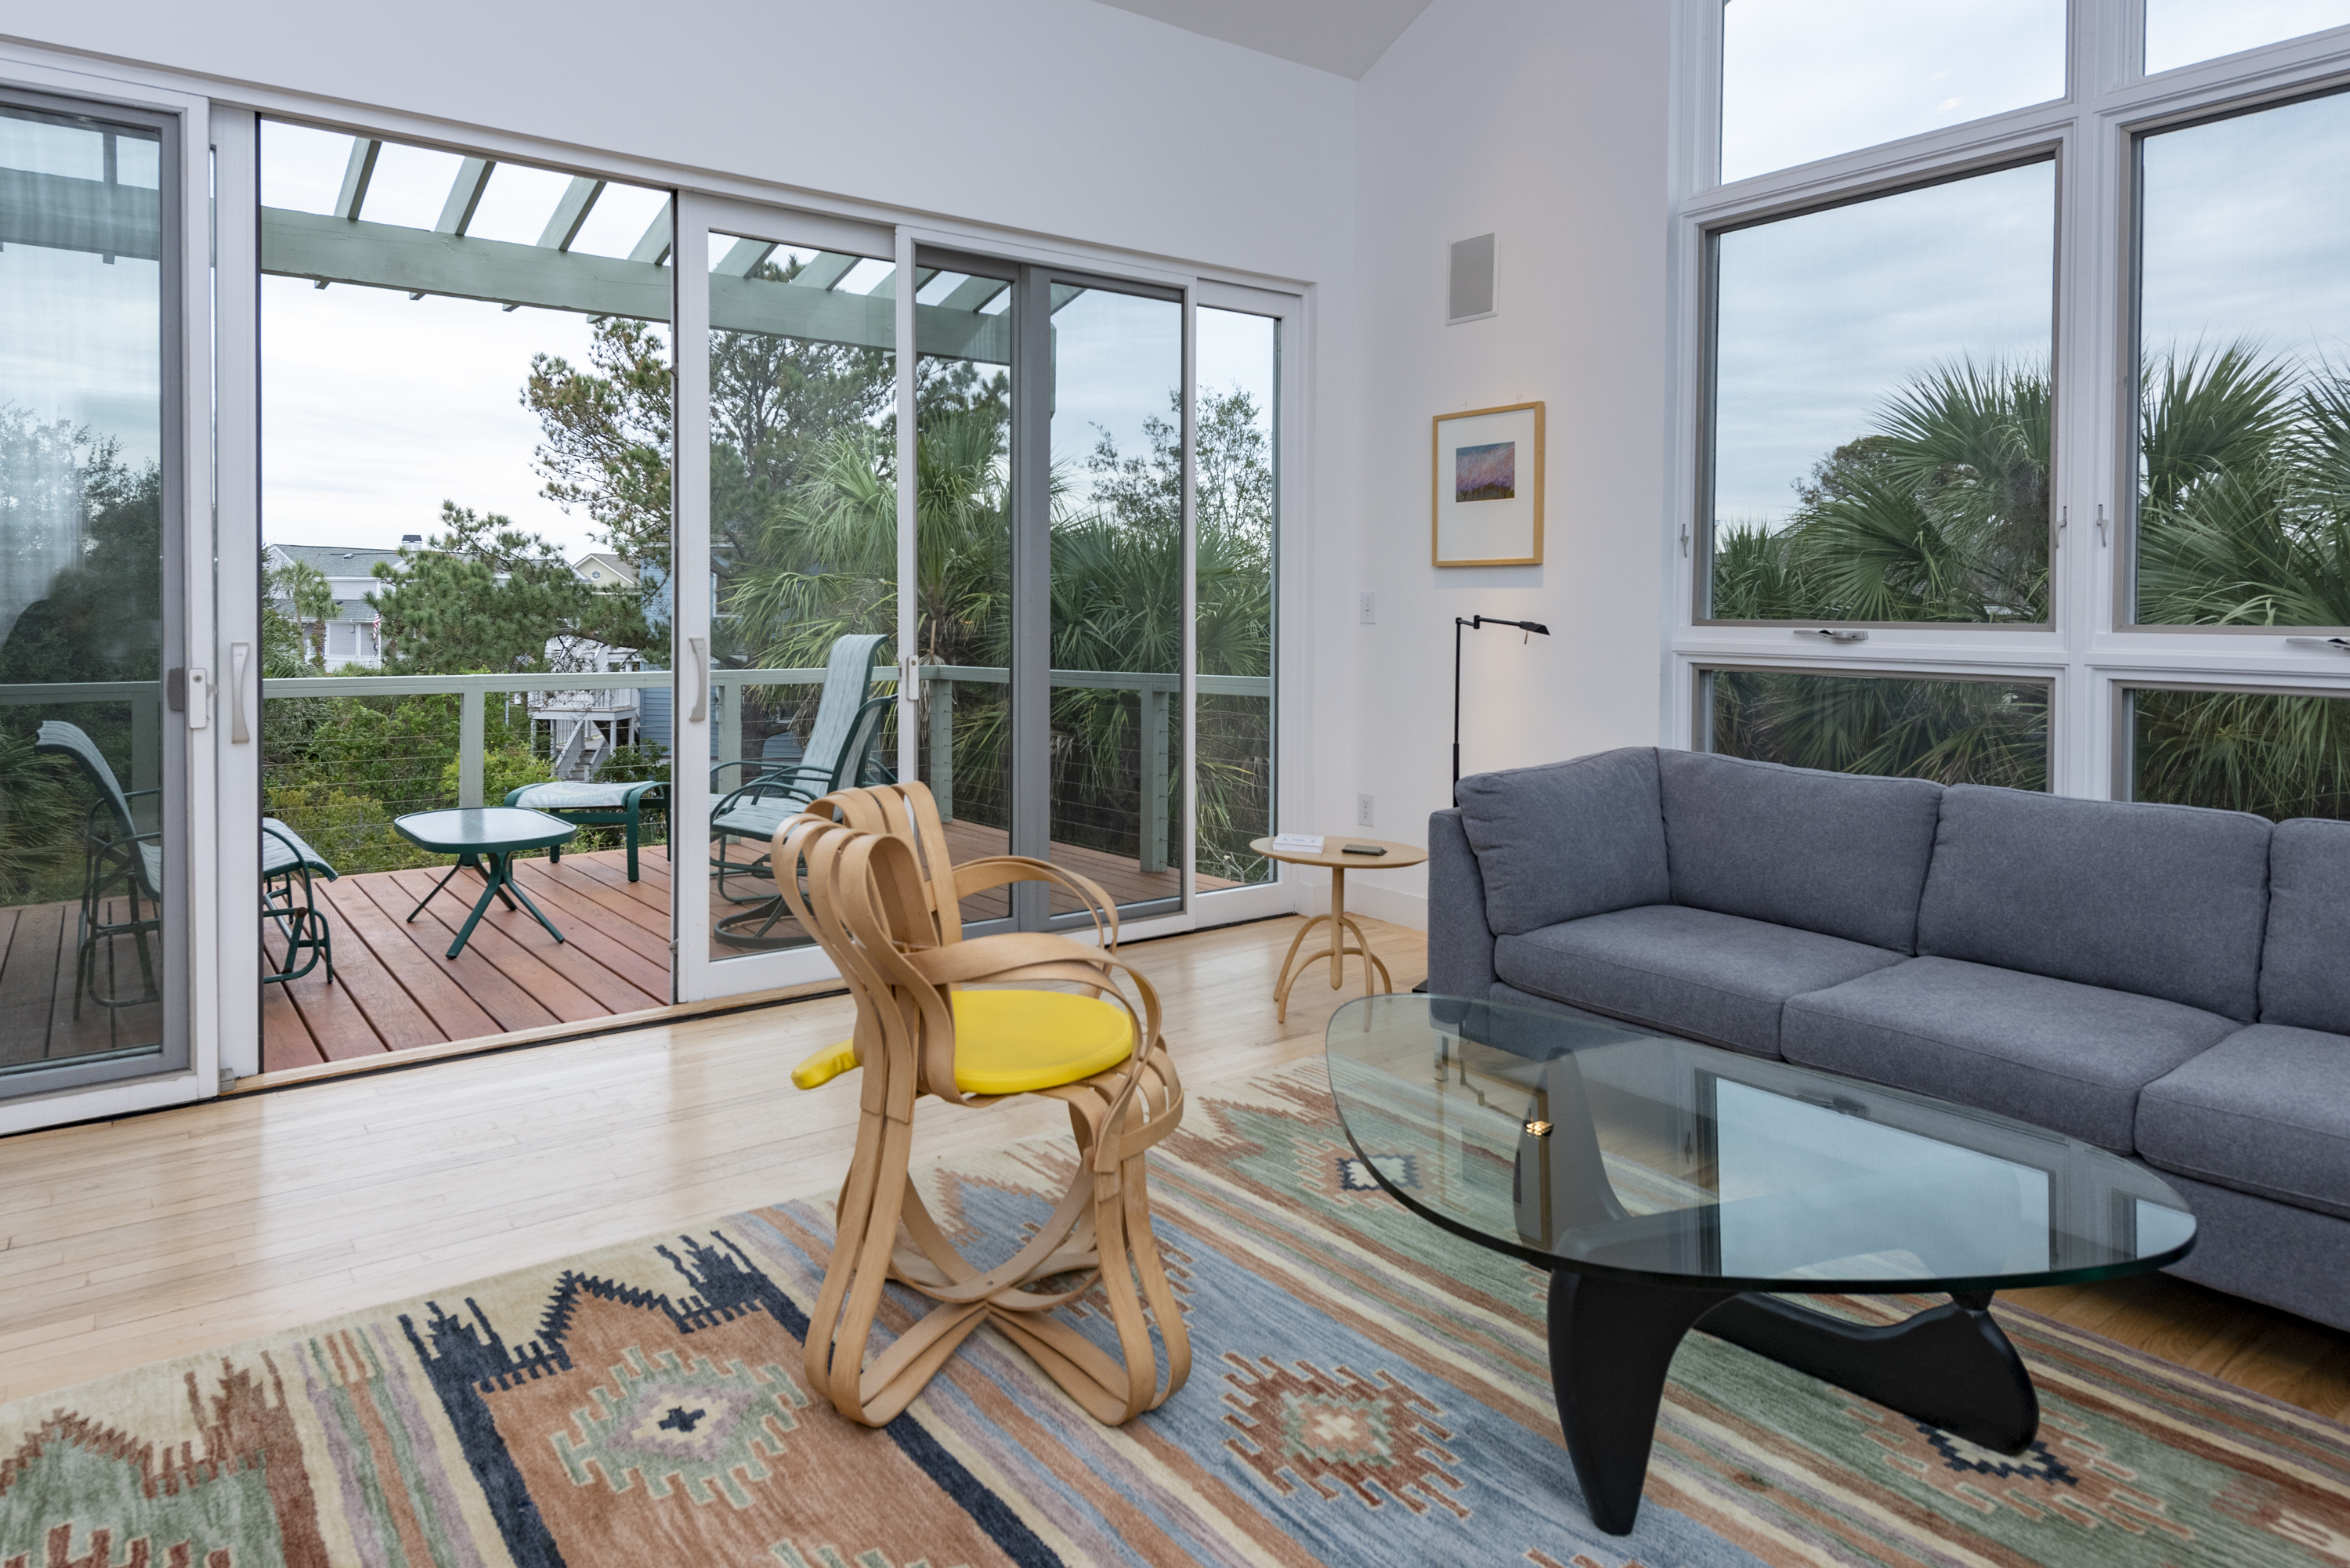 Upper level living room with deck access and ocean views